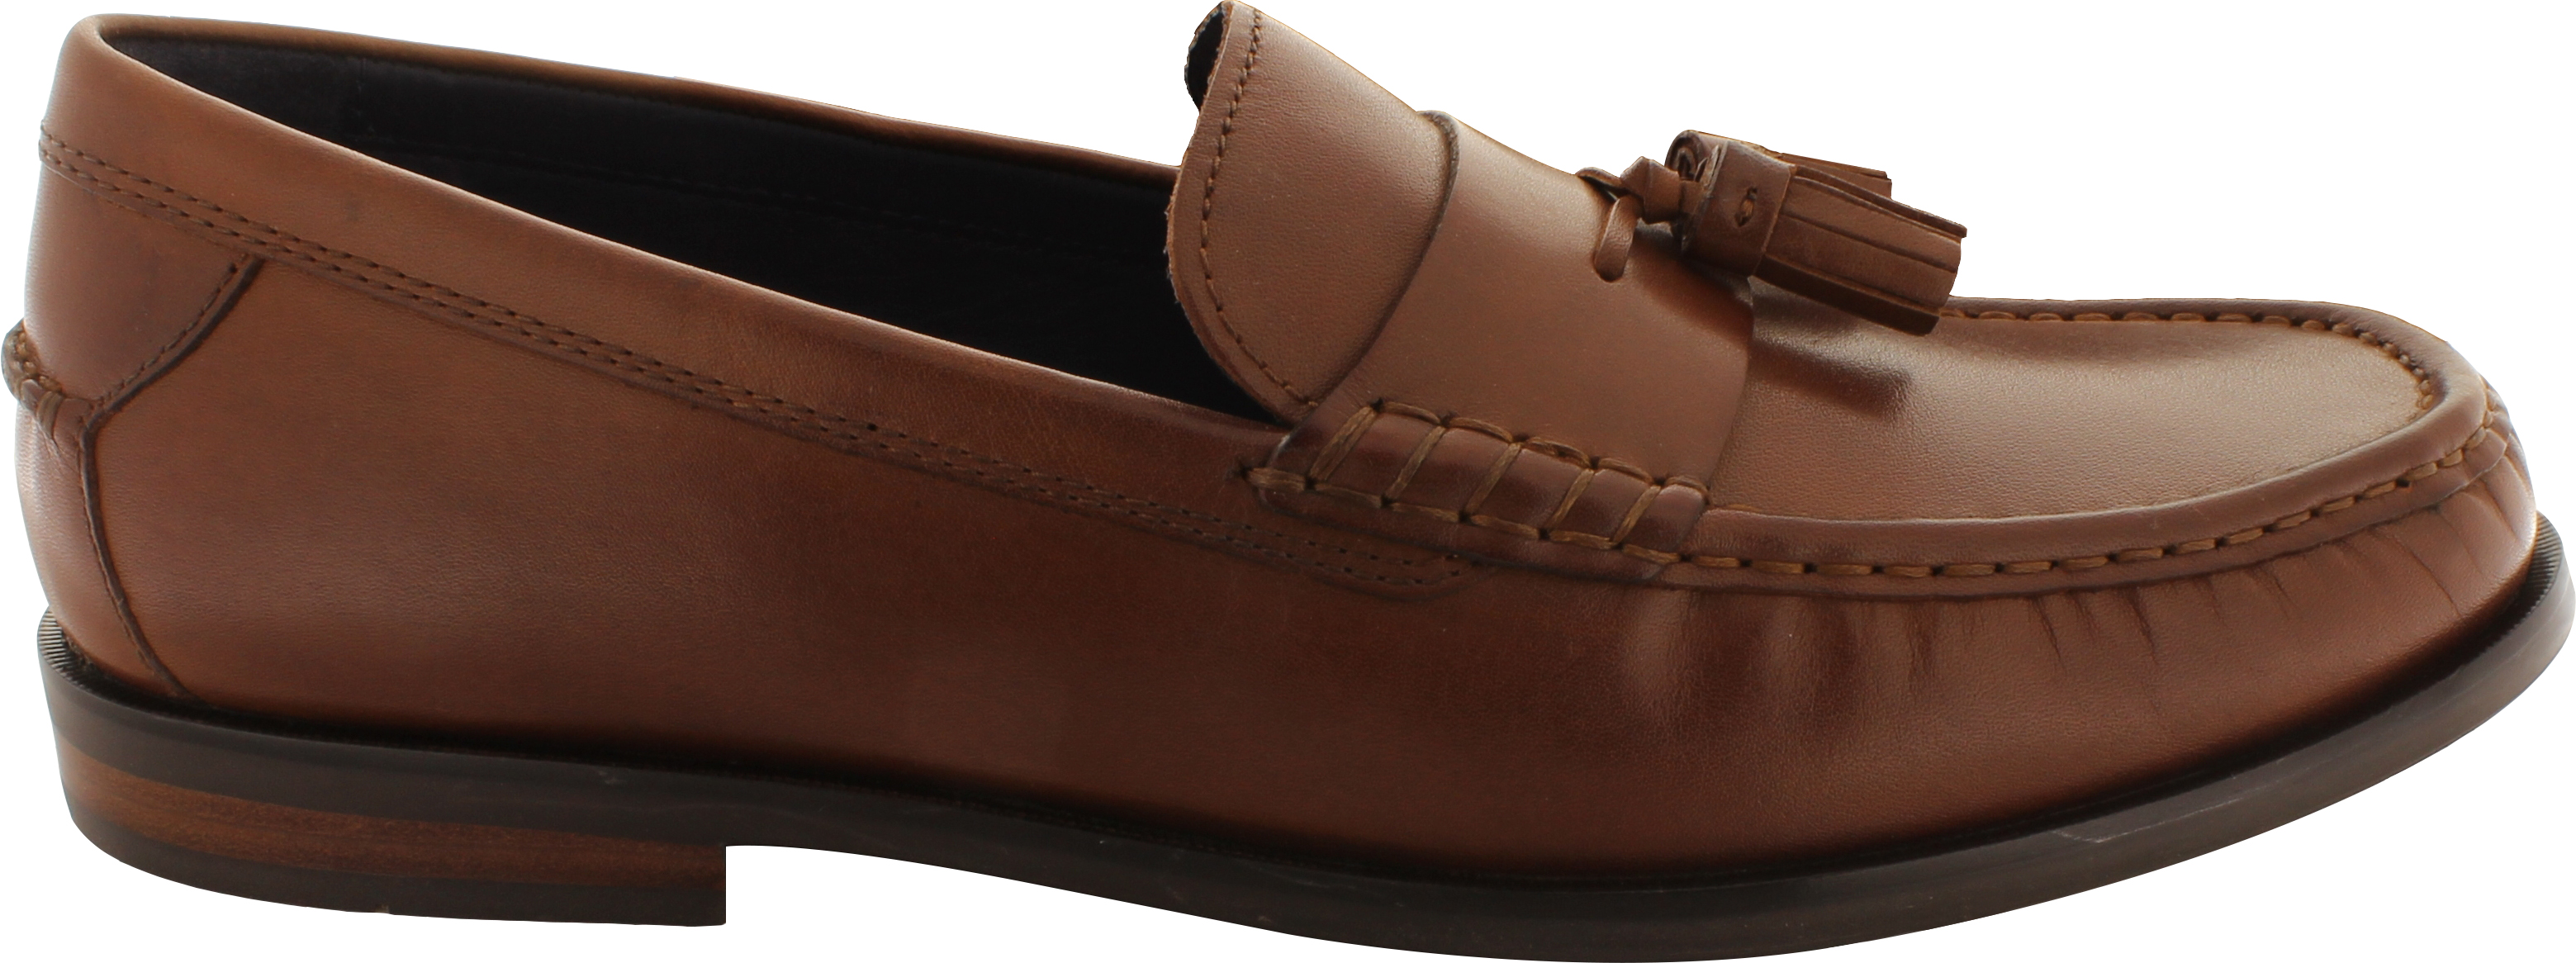 50b71f97257 Cole Haan Men s C25264 - Pinch Friday Tassel Contemporary - The Shoe ...